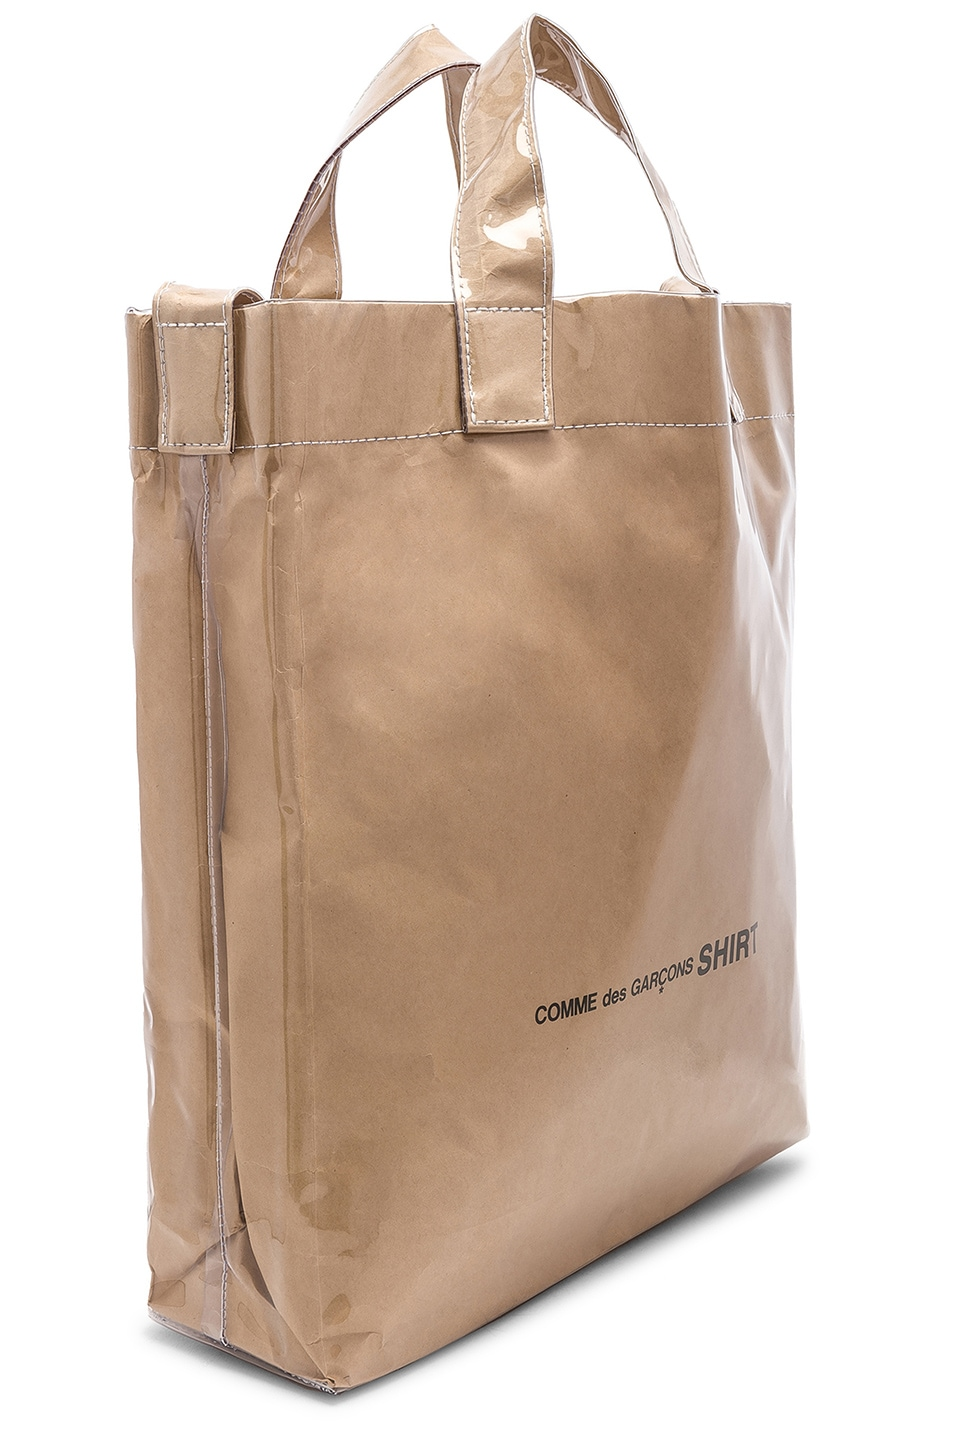 Image 3 of Comme Des Garcons SHIRT PVC Messenger Tote in Kraft